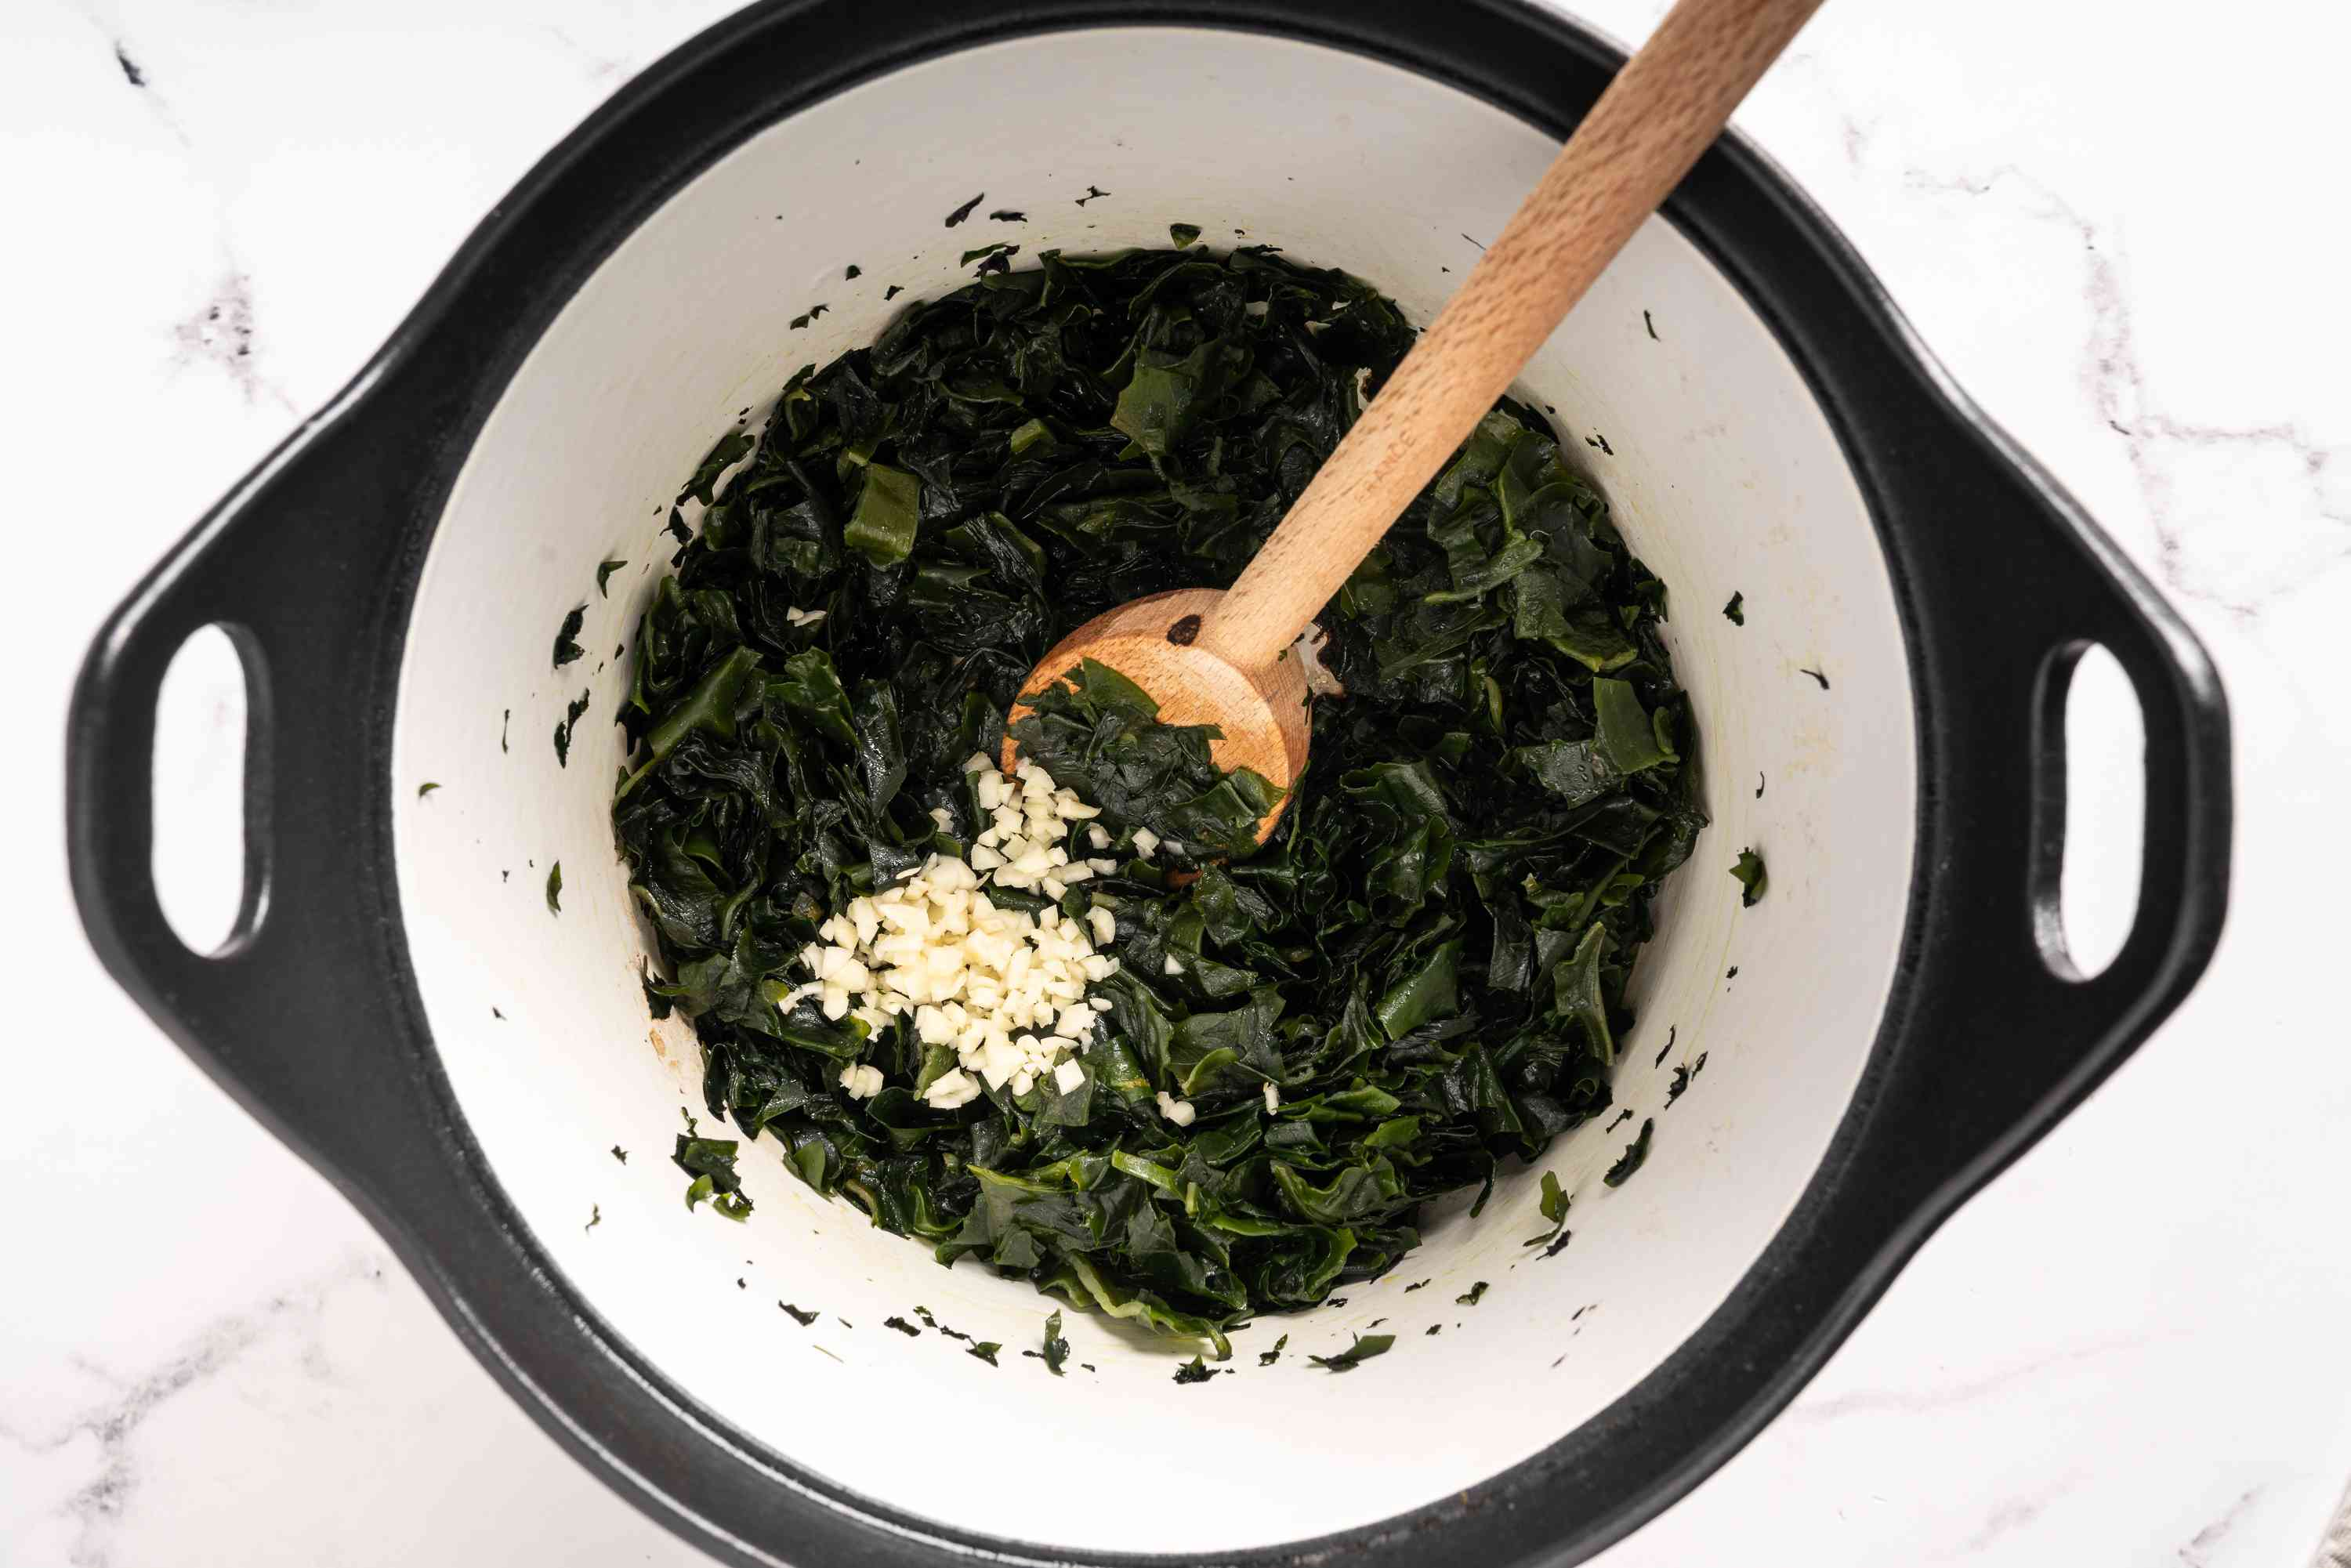 Add garlic and soy sauce to the seaweed in the pot